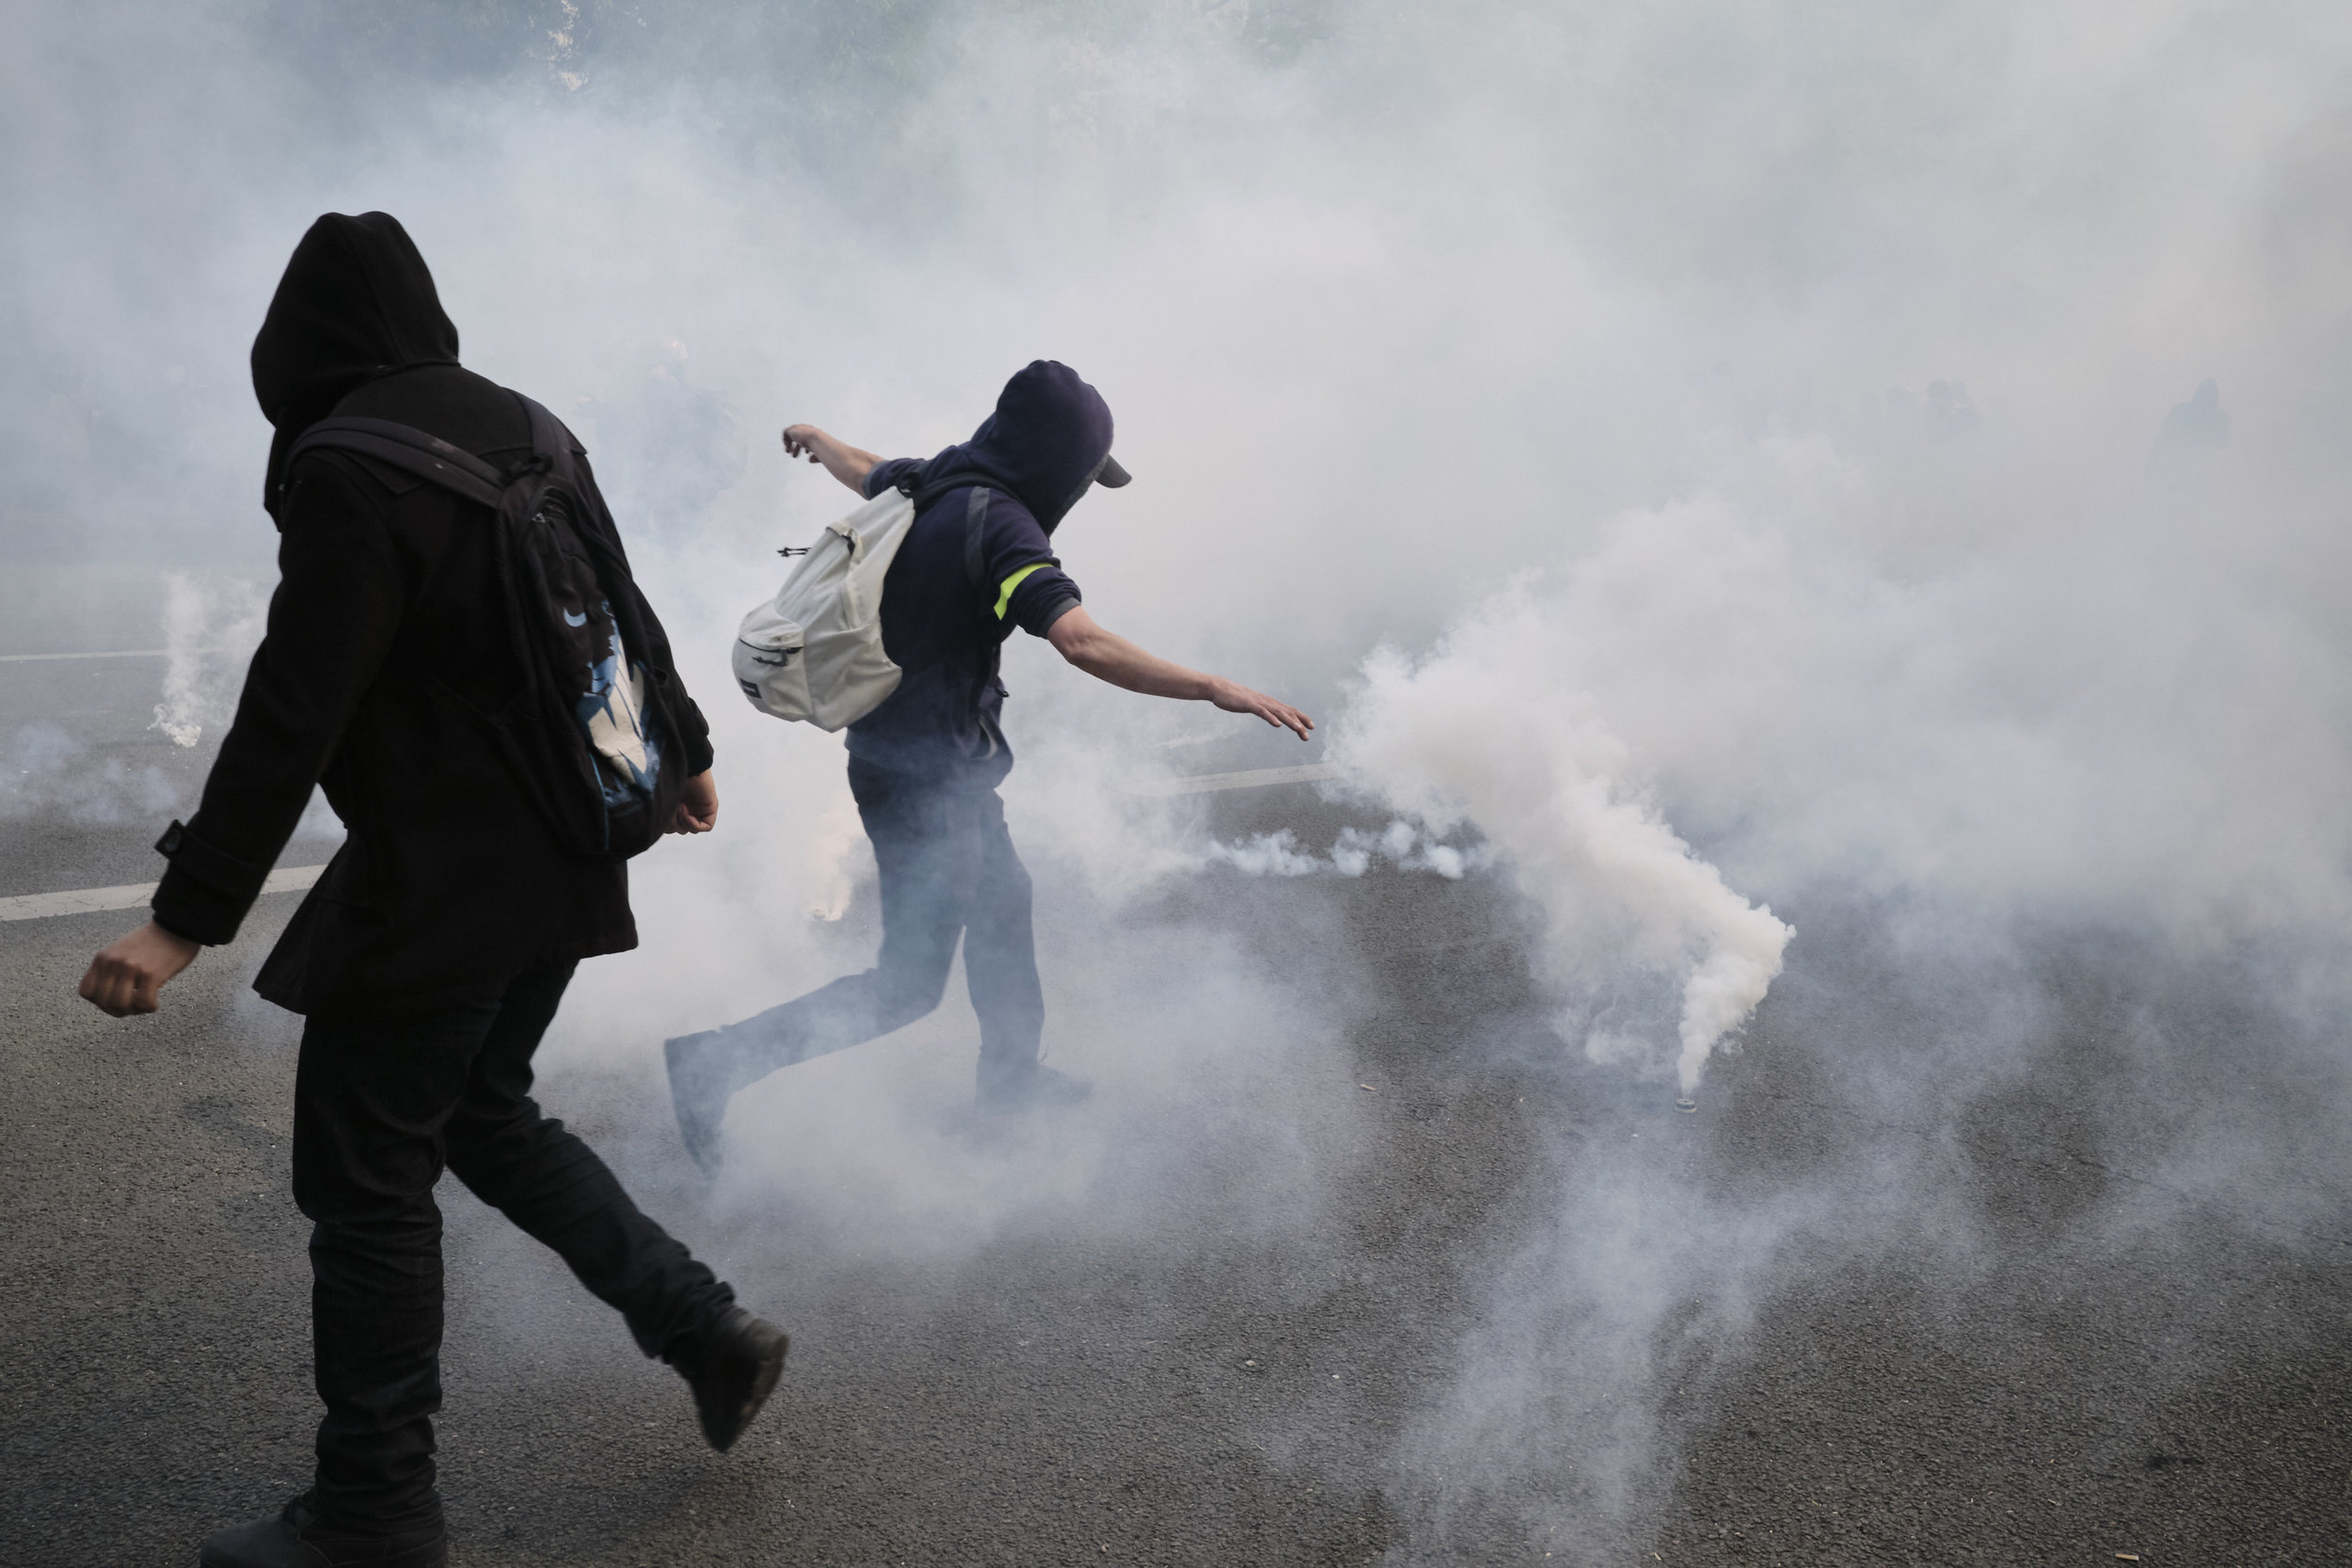 Protesters kicking tear gas grenades away from the crowd of protesters towards the police during a confrontation.